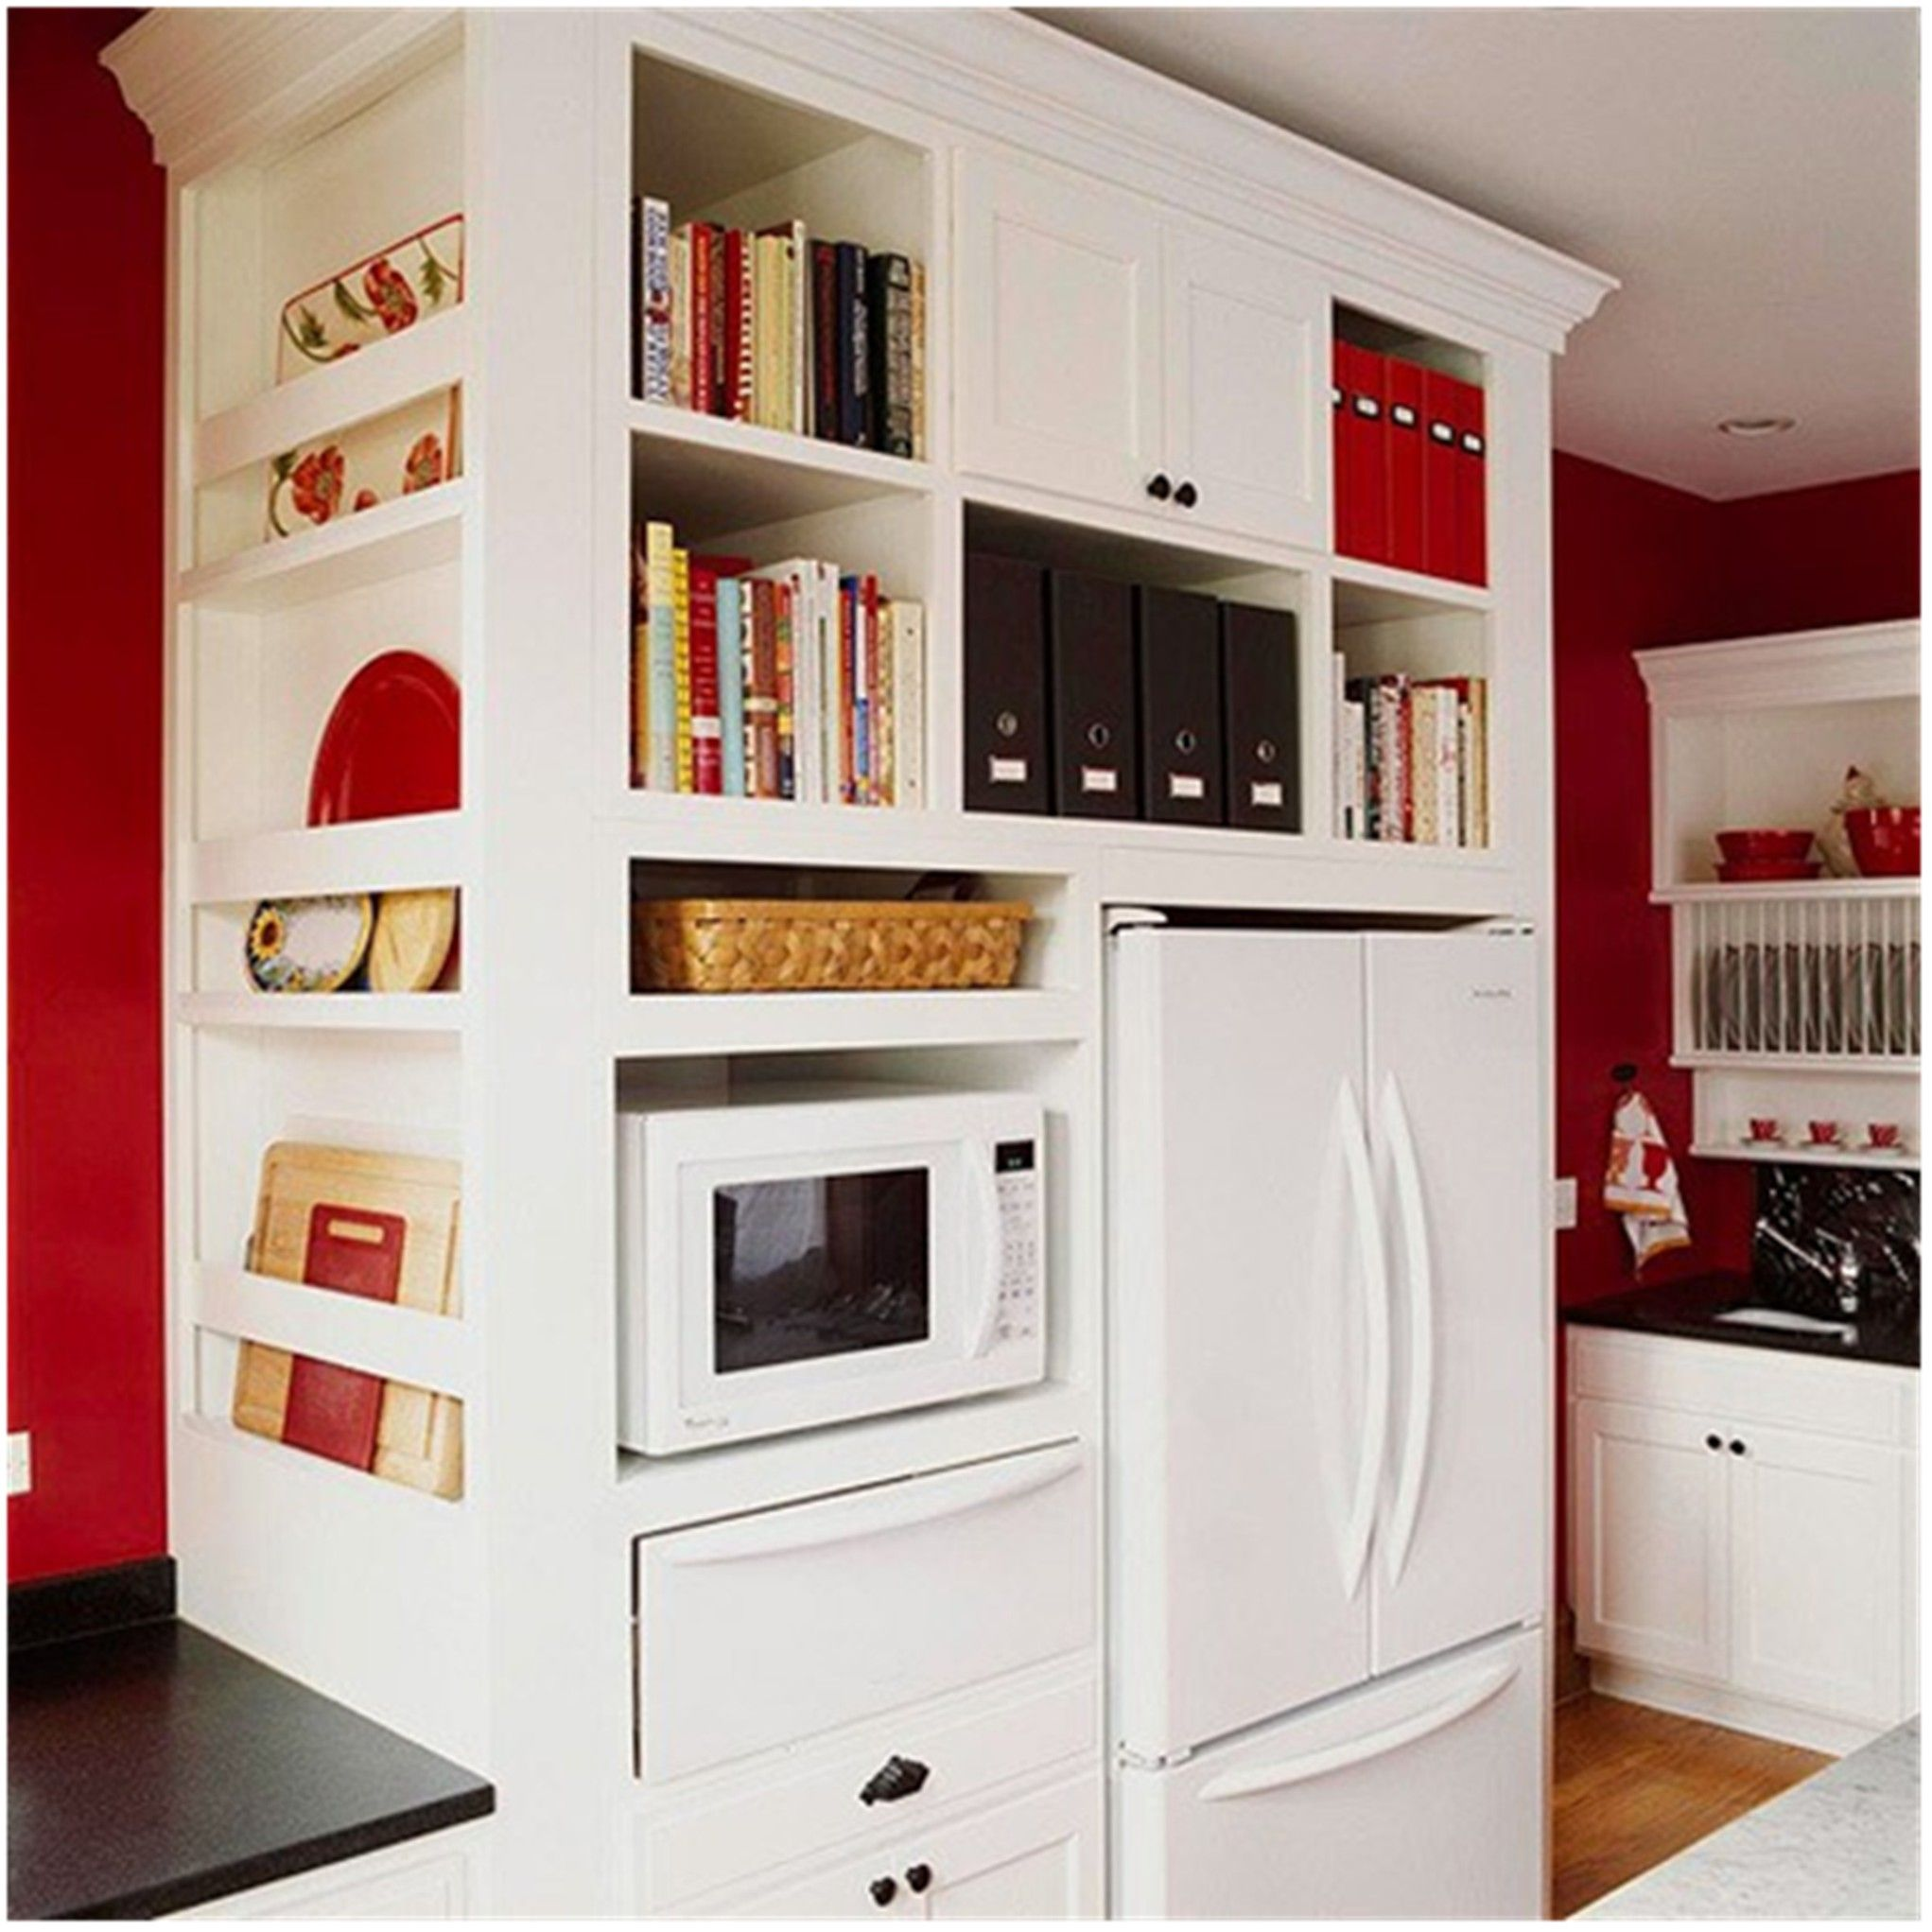 The Easiest Way To Renovate Your Kitchen: Best Ways To Store More In Your Kitchen (With Images